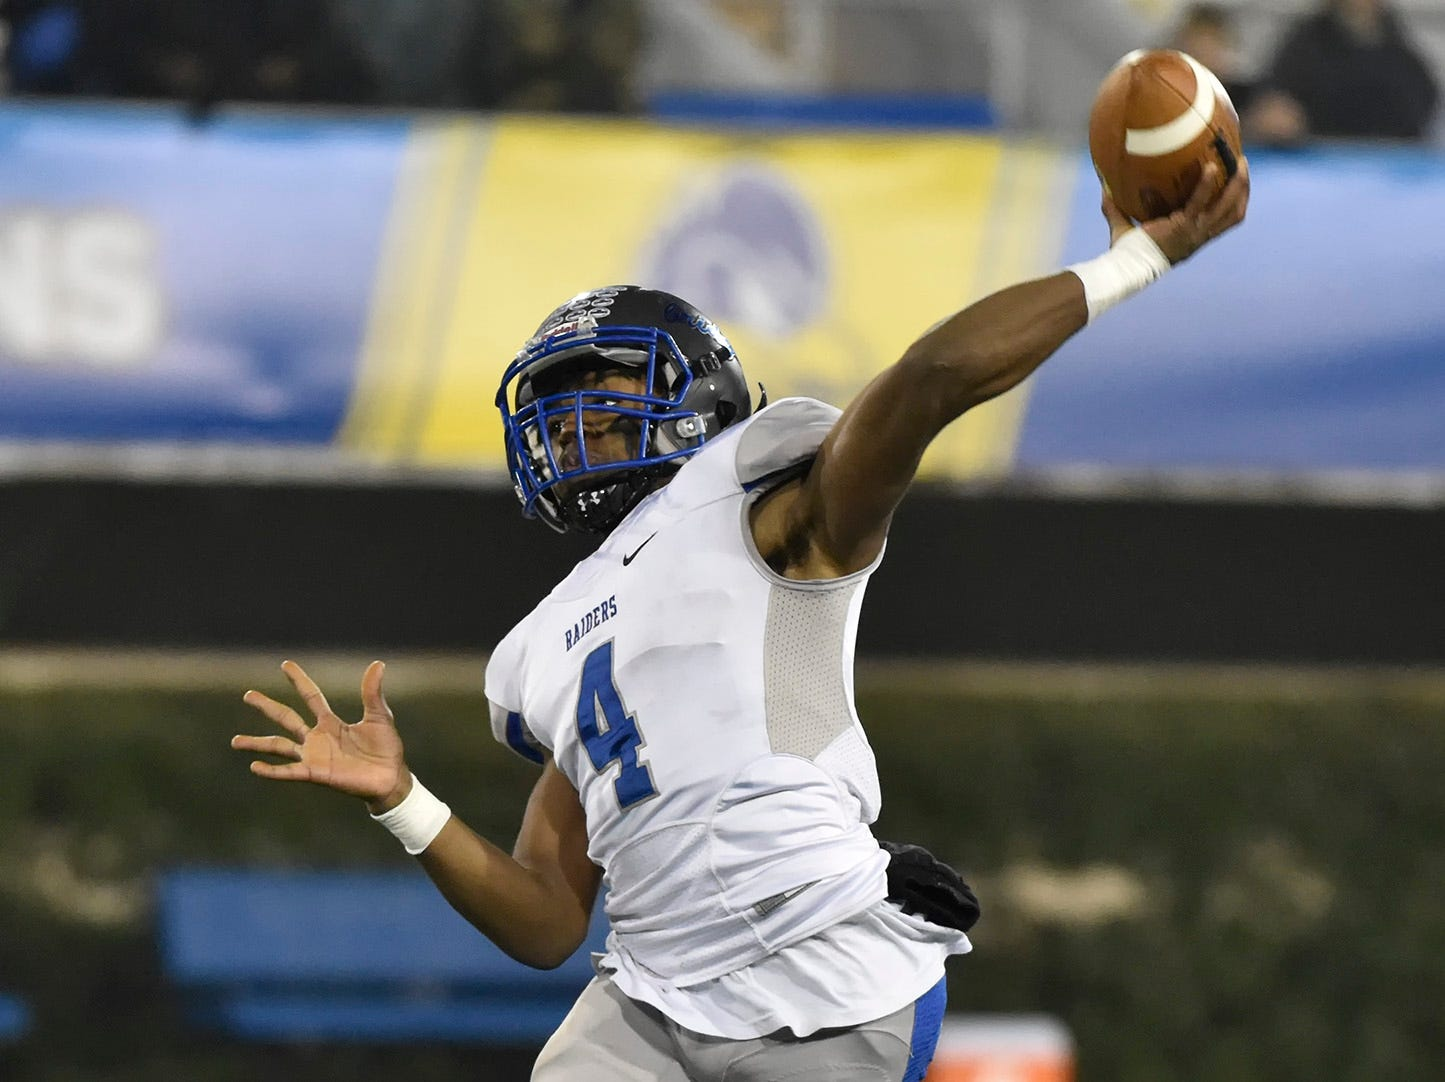 Woodbridge's Troy Haynes (4) with a pass attempt in the DIAA Division II State High School Football Championship game at the University of Delaware.